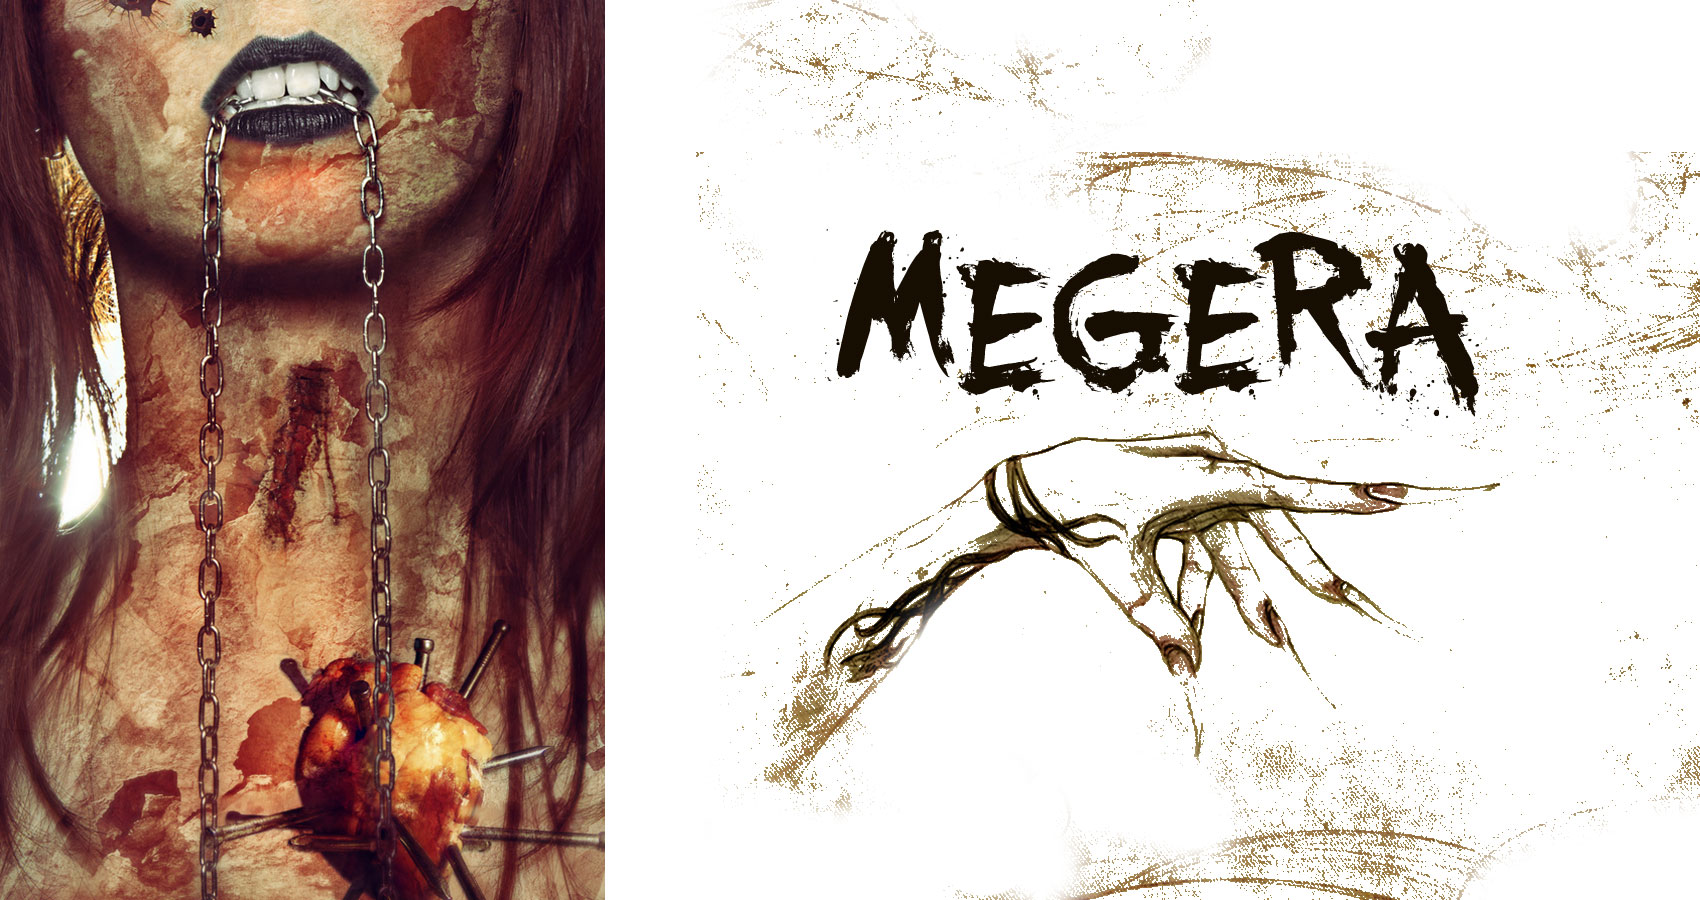 Megera written by Giuliana Sisca and edited by Maurizio Ricci at Spillwords.com